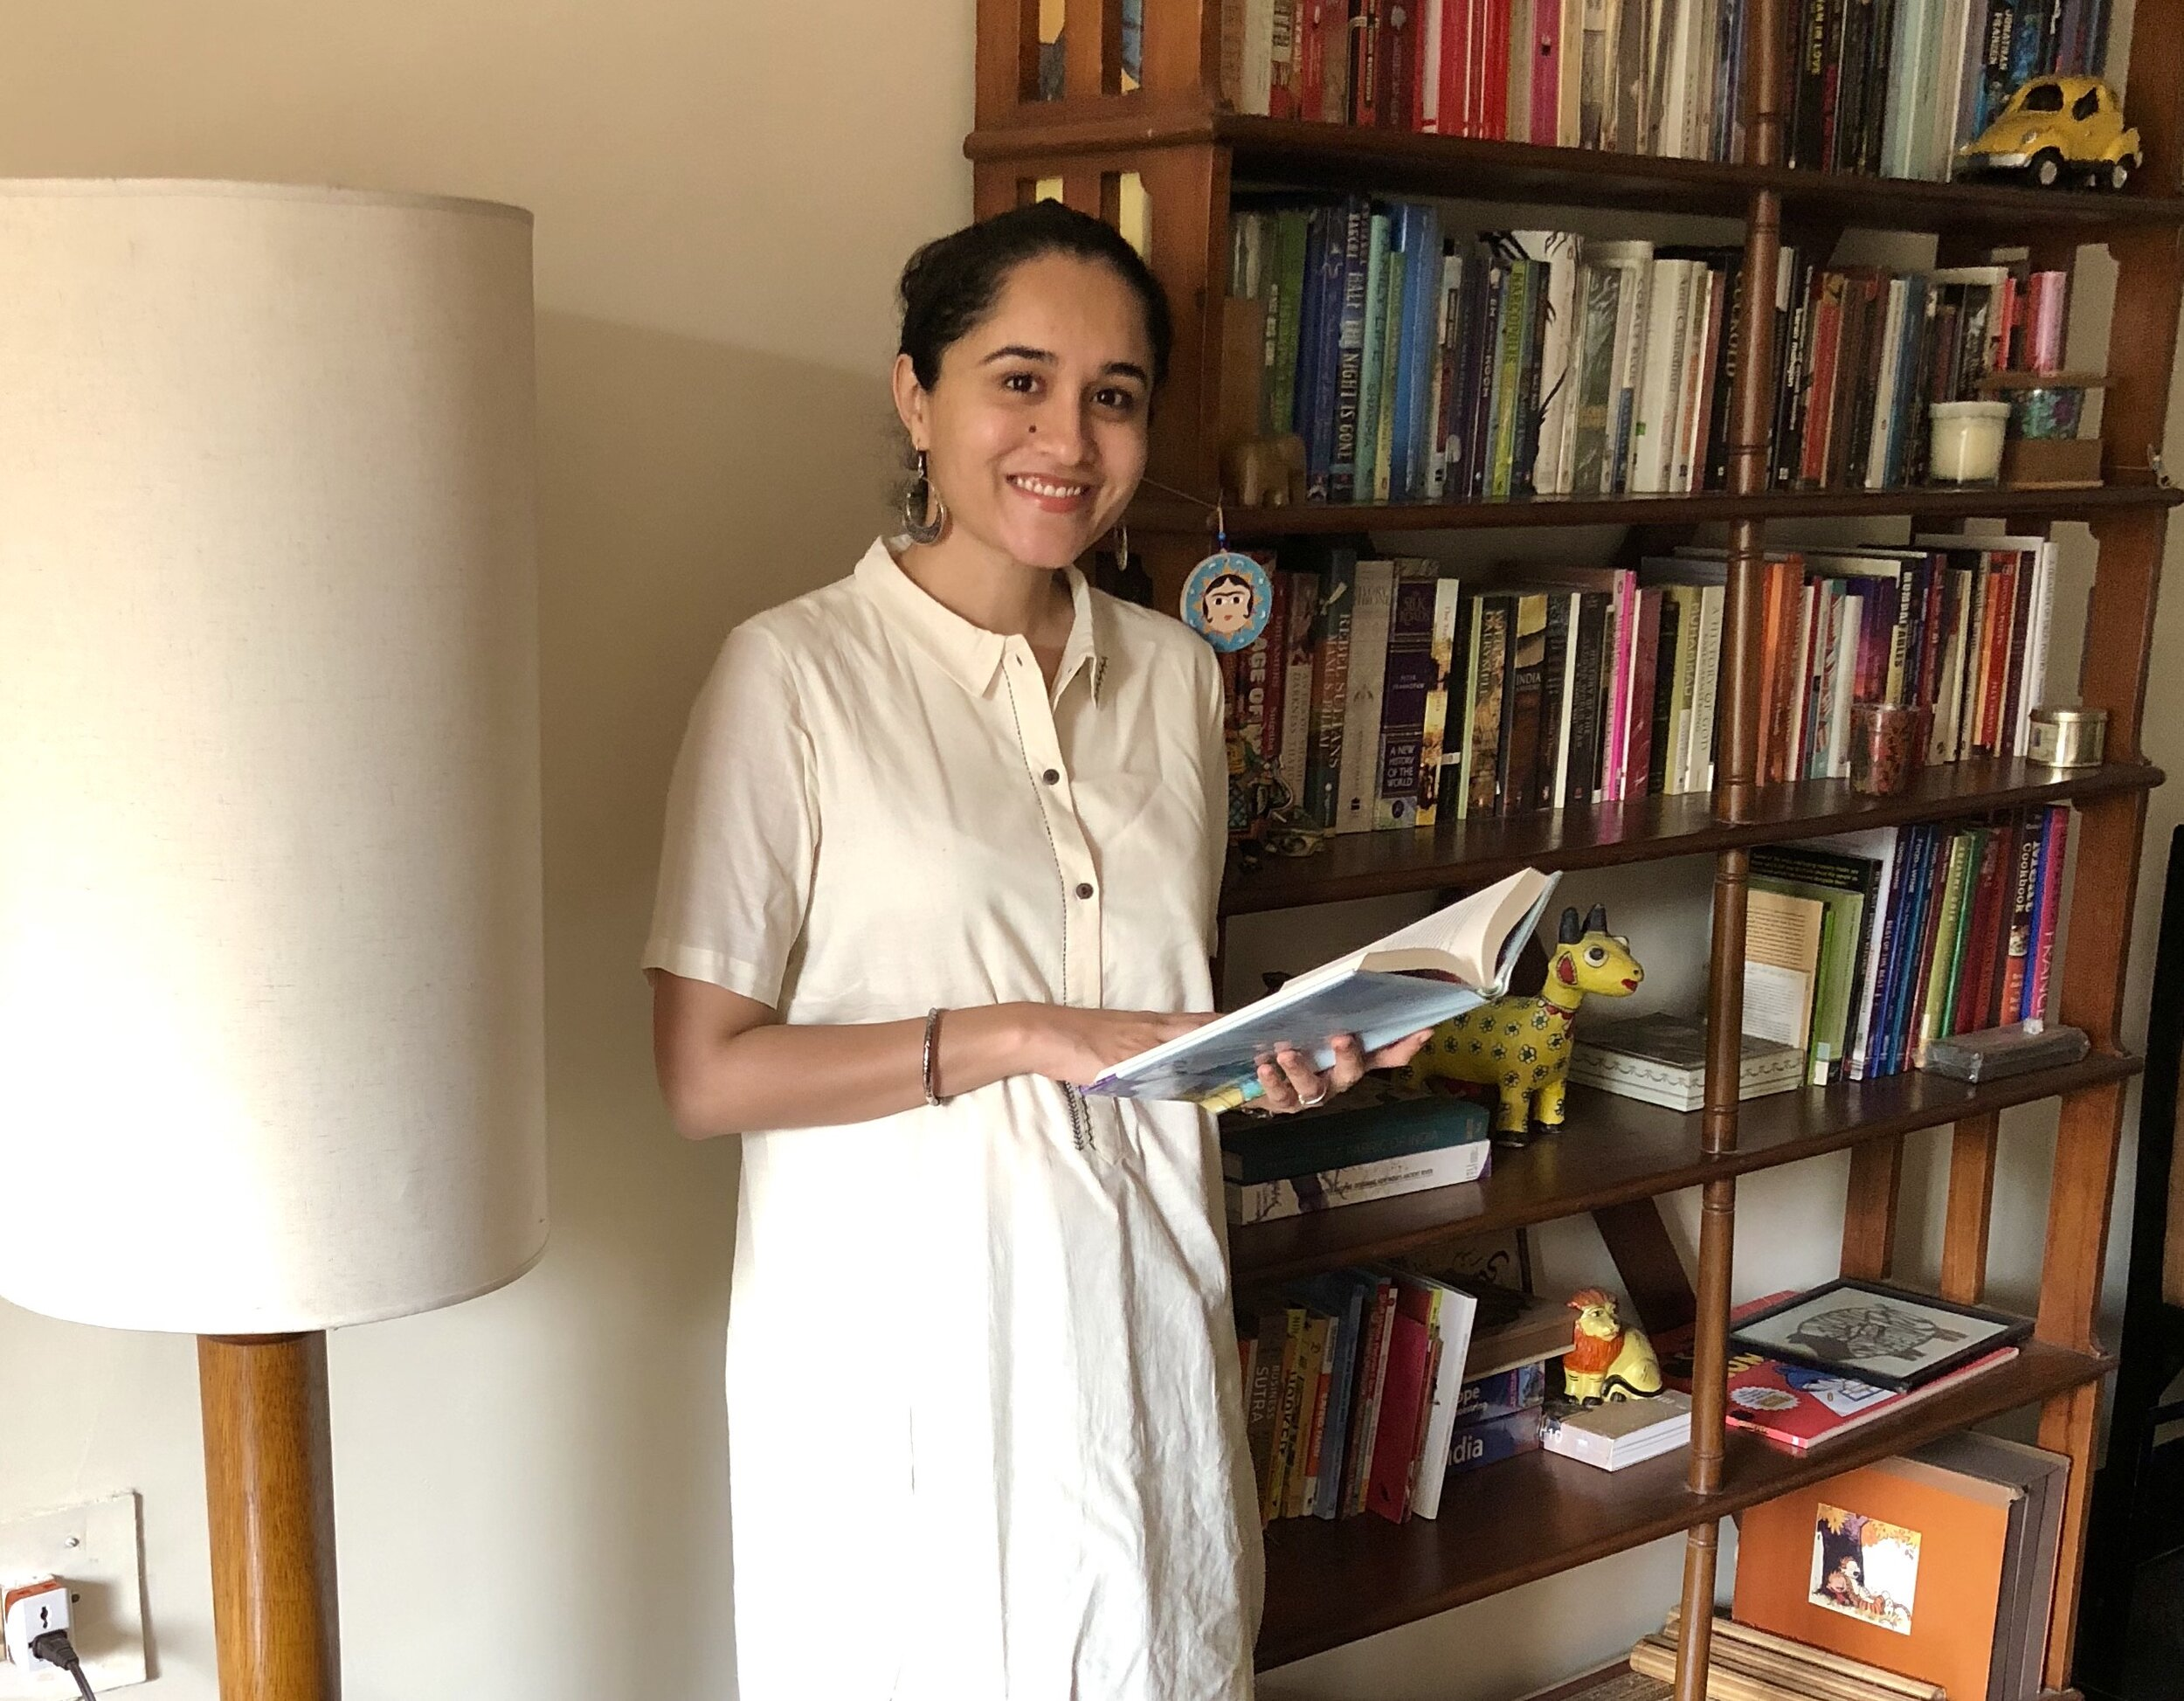 The author with her personal book collection.